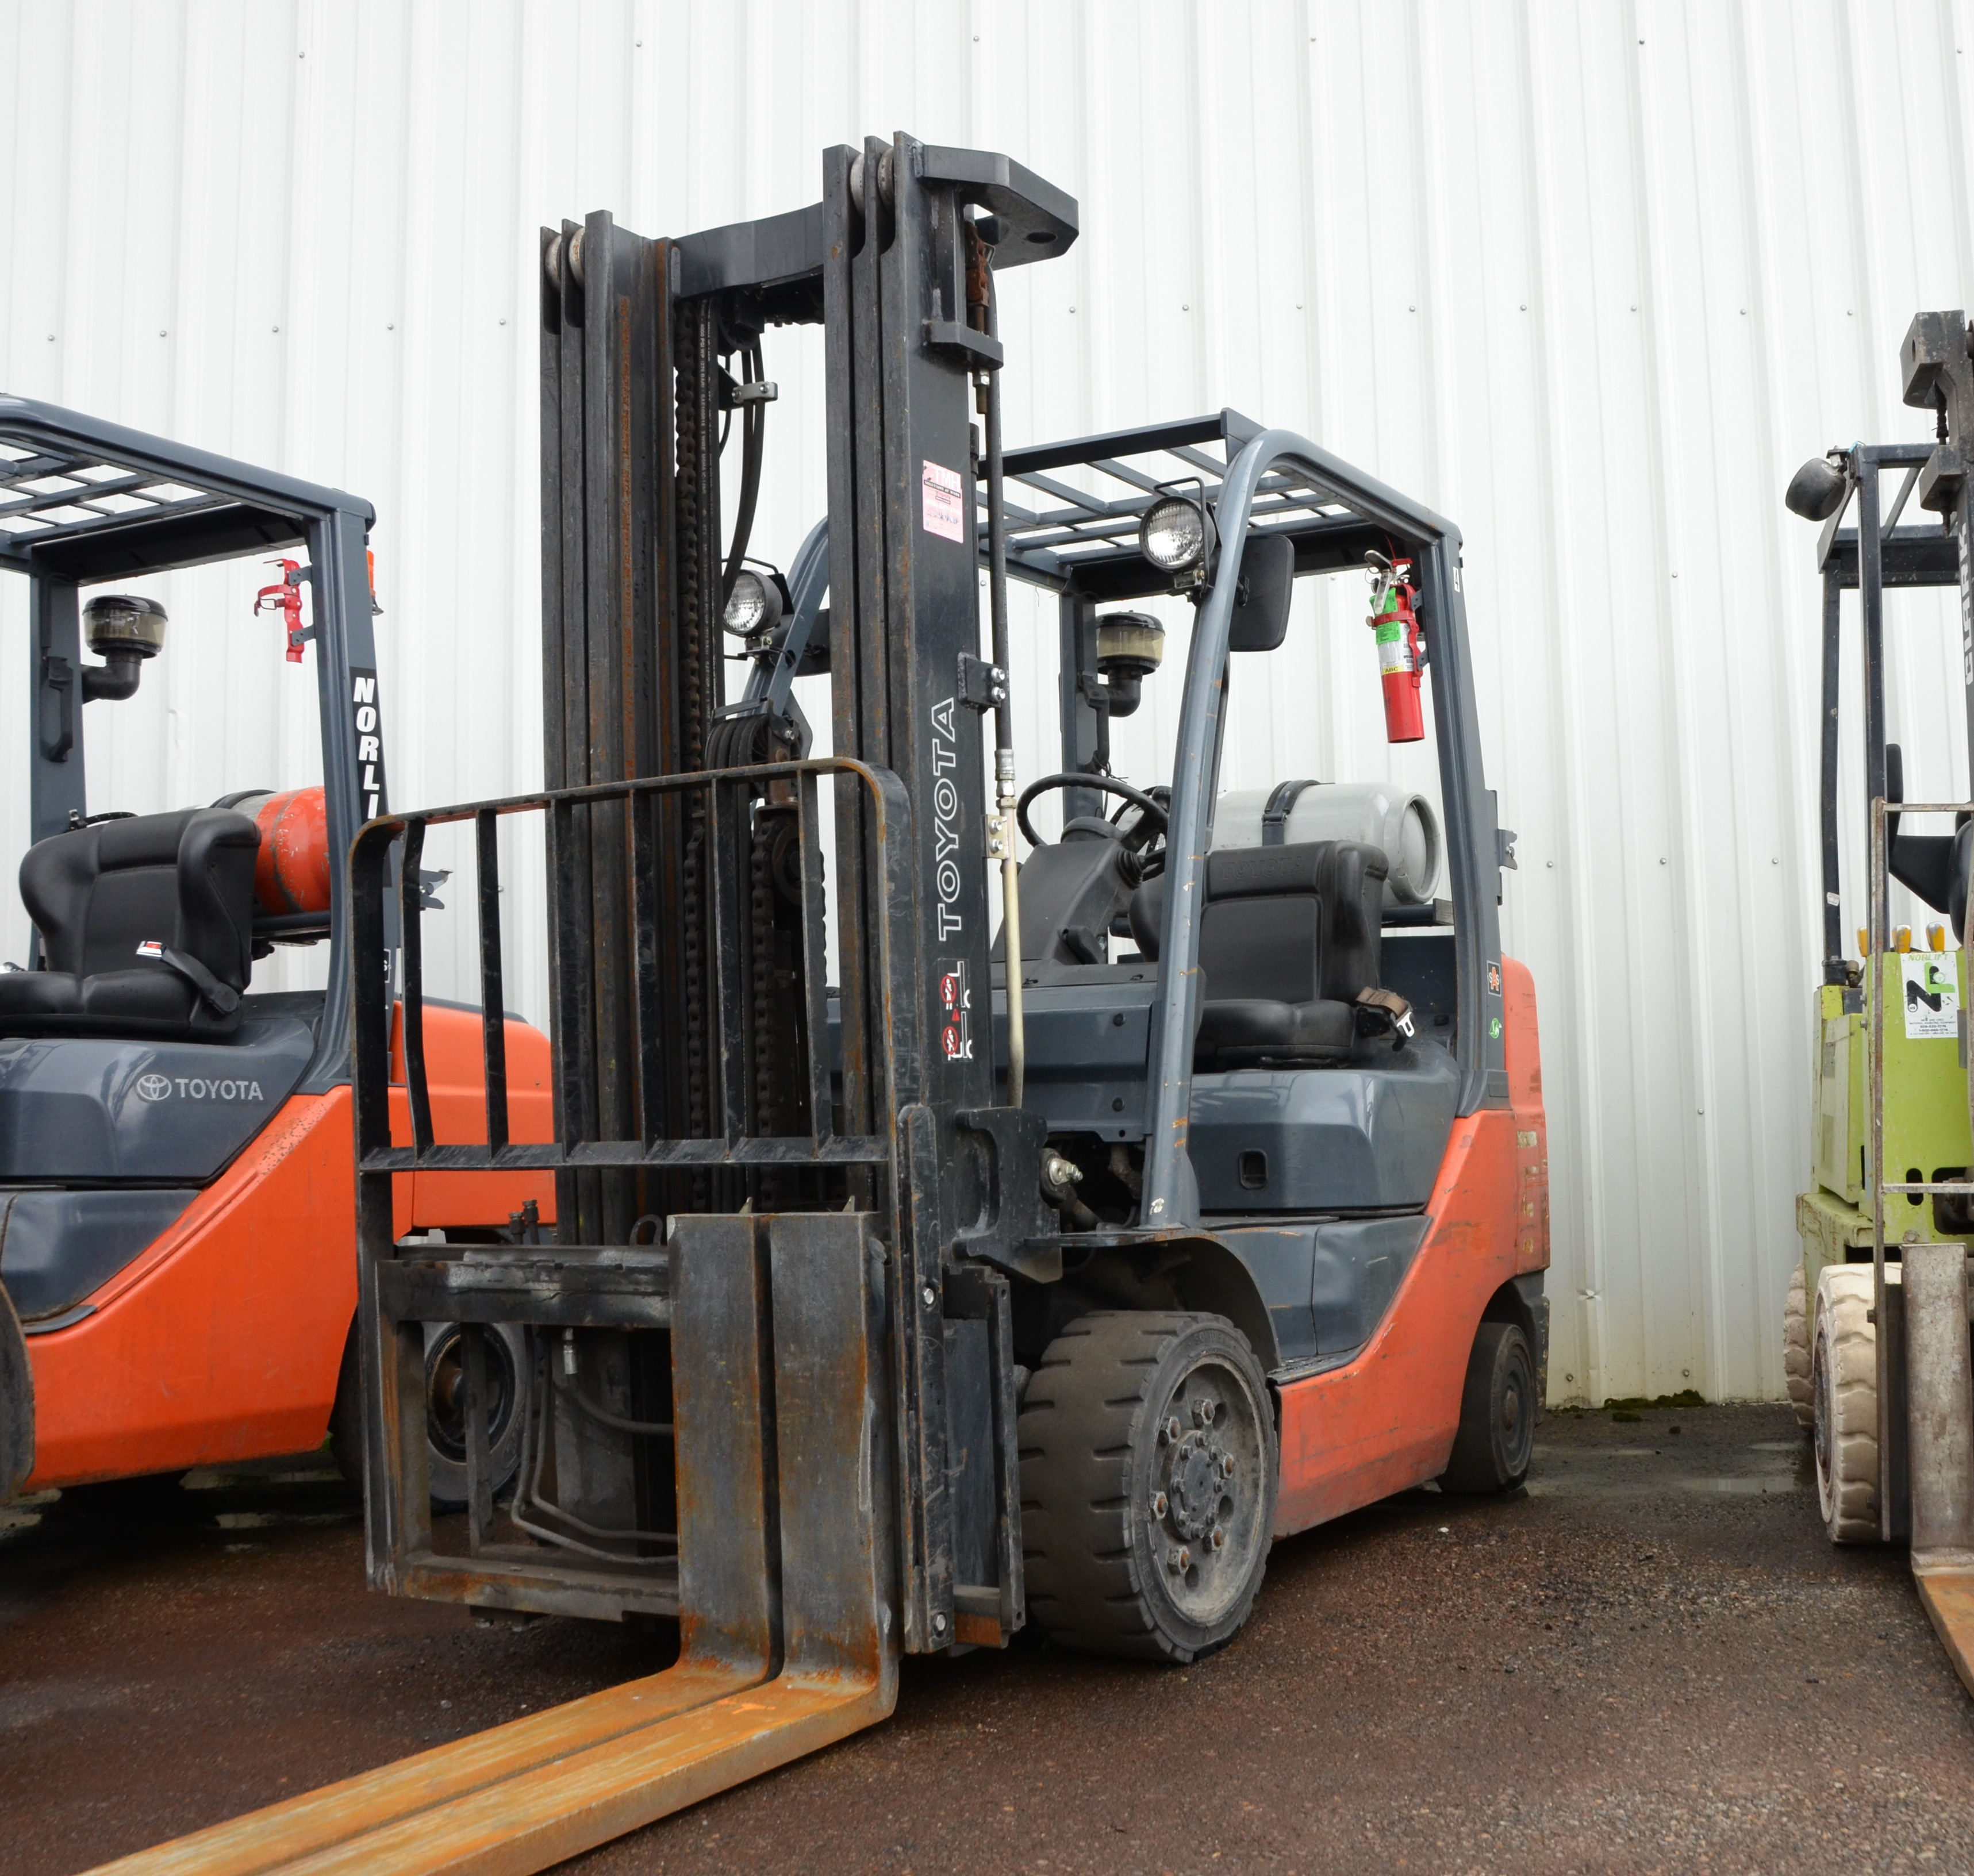 Used Toyota Under 5000: Used Forklifts In Spokane, WA